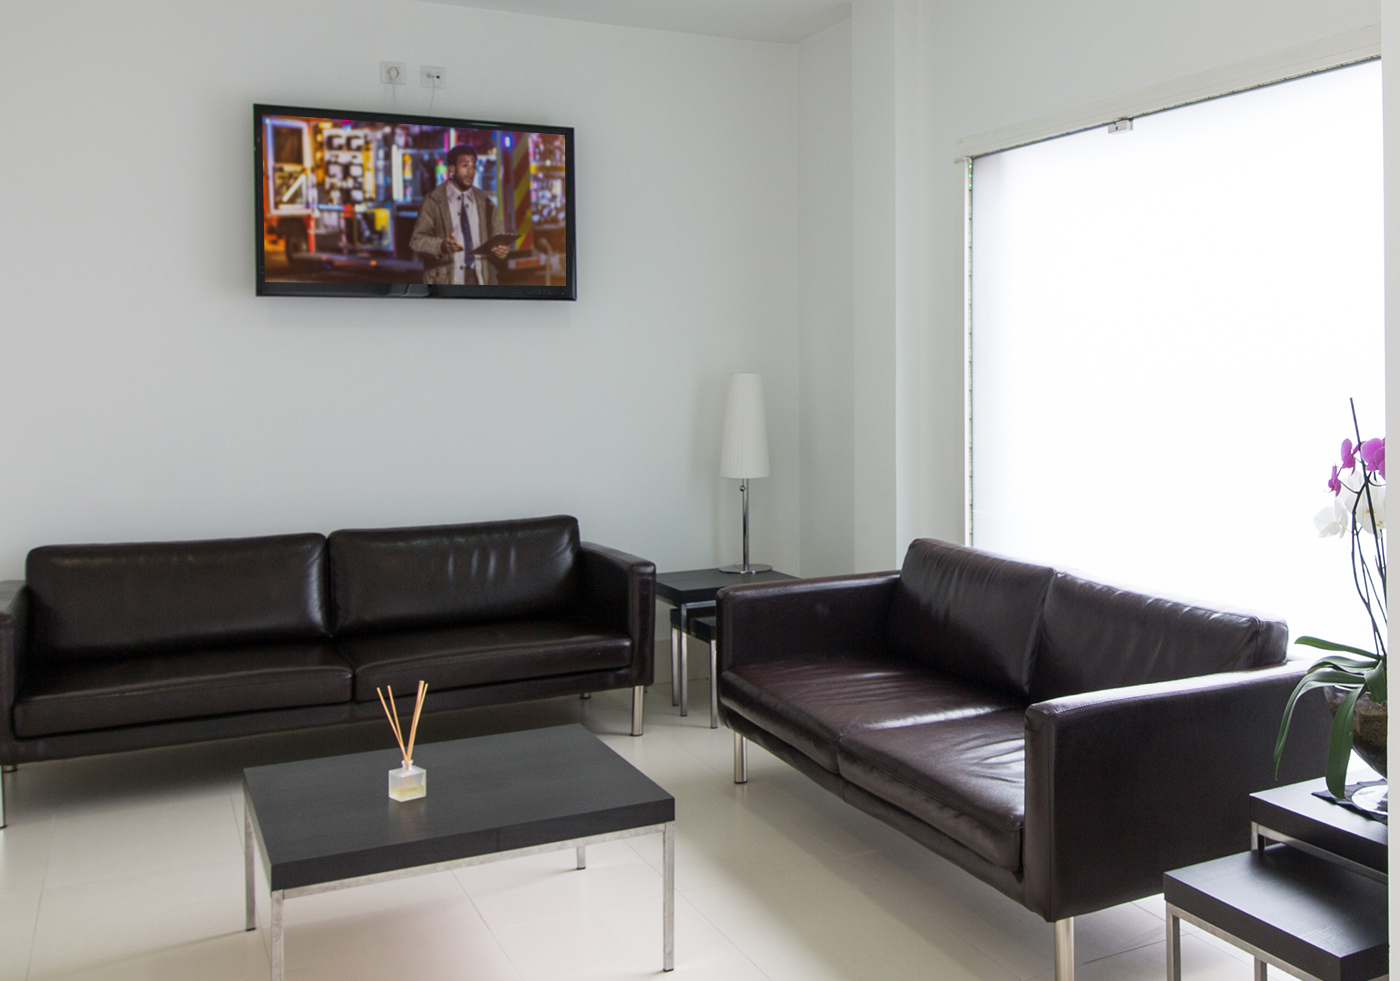 office waiting room with mounted tv on wall